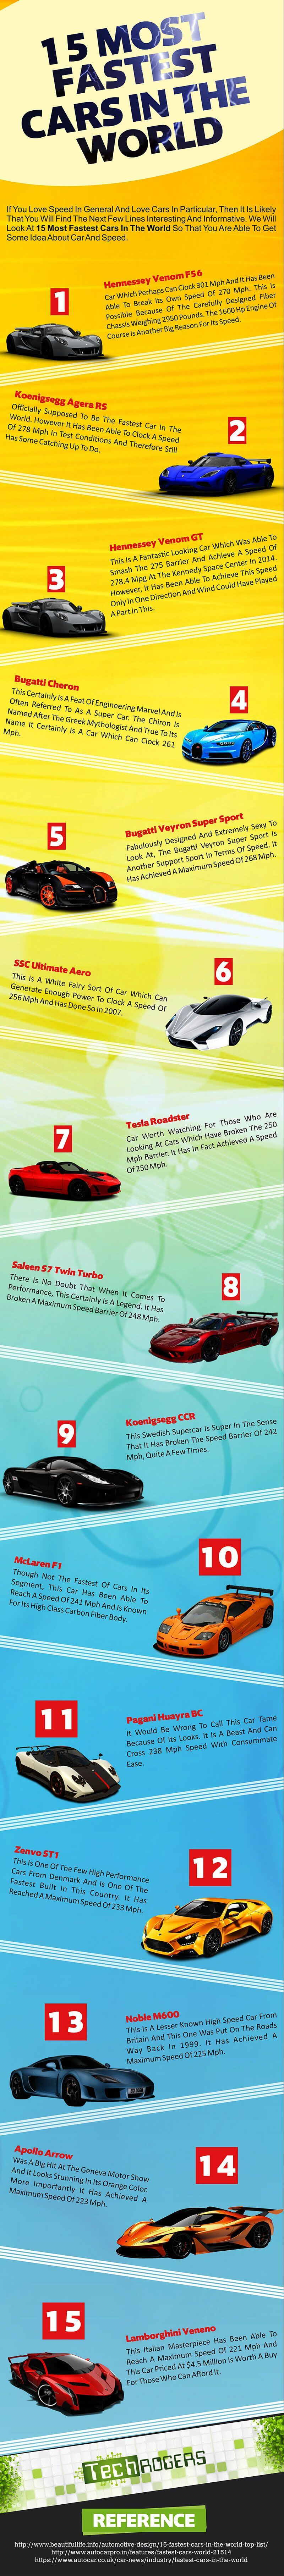 15 Most Fastest Cars In The World [Infographic]